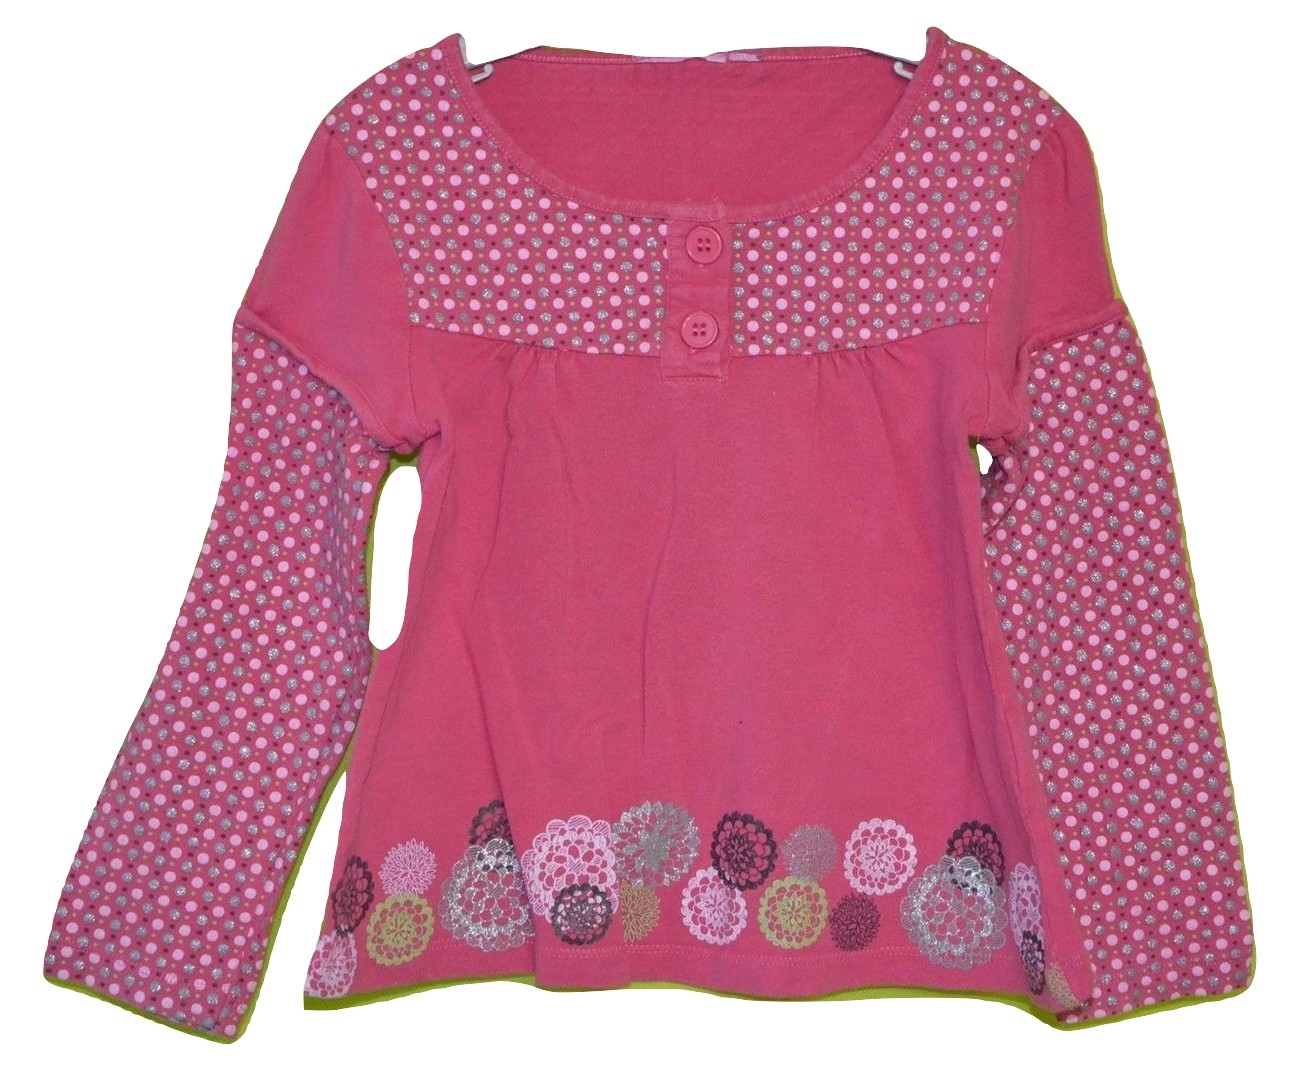 polo manches longues 4 ans fille rose occasion